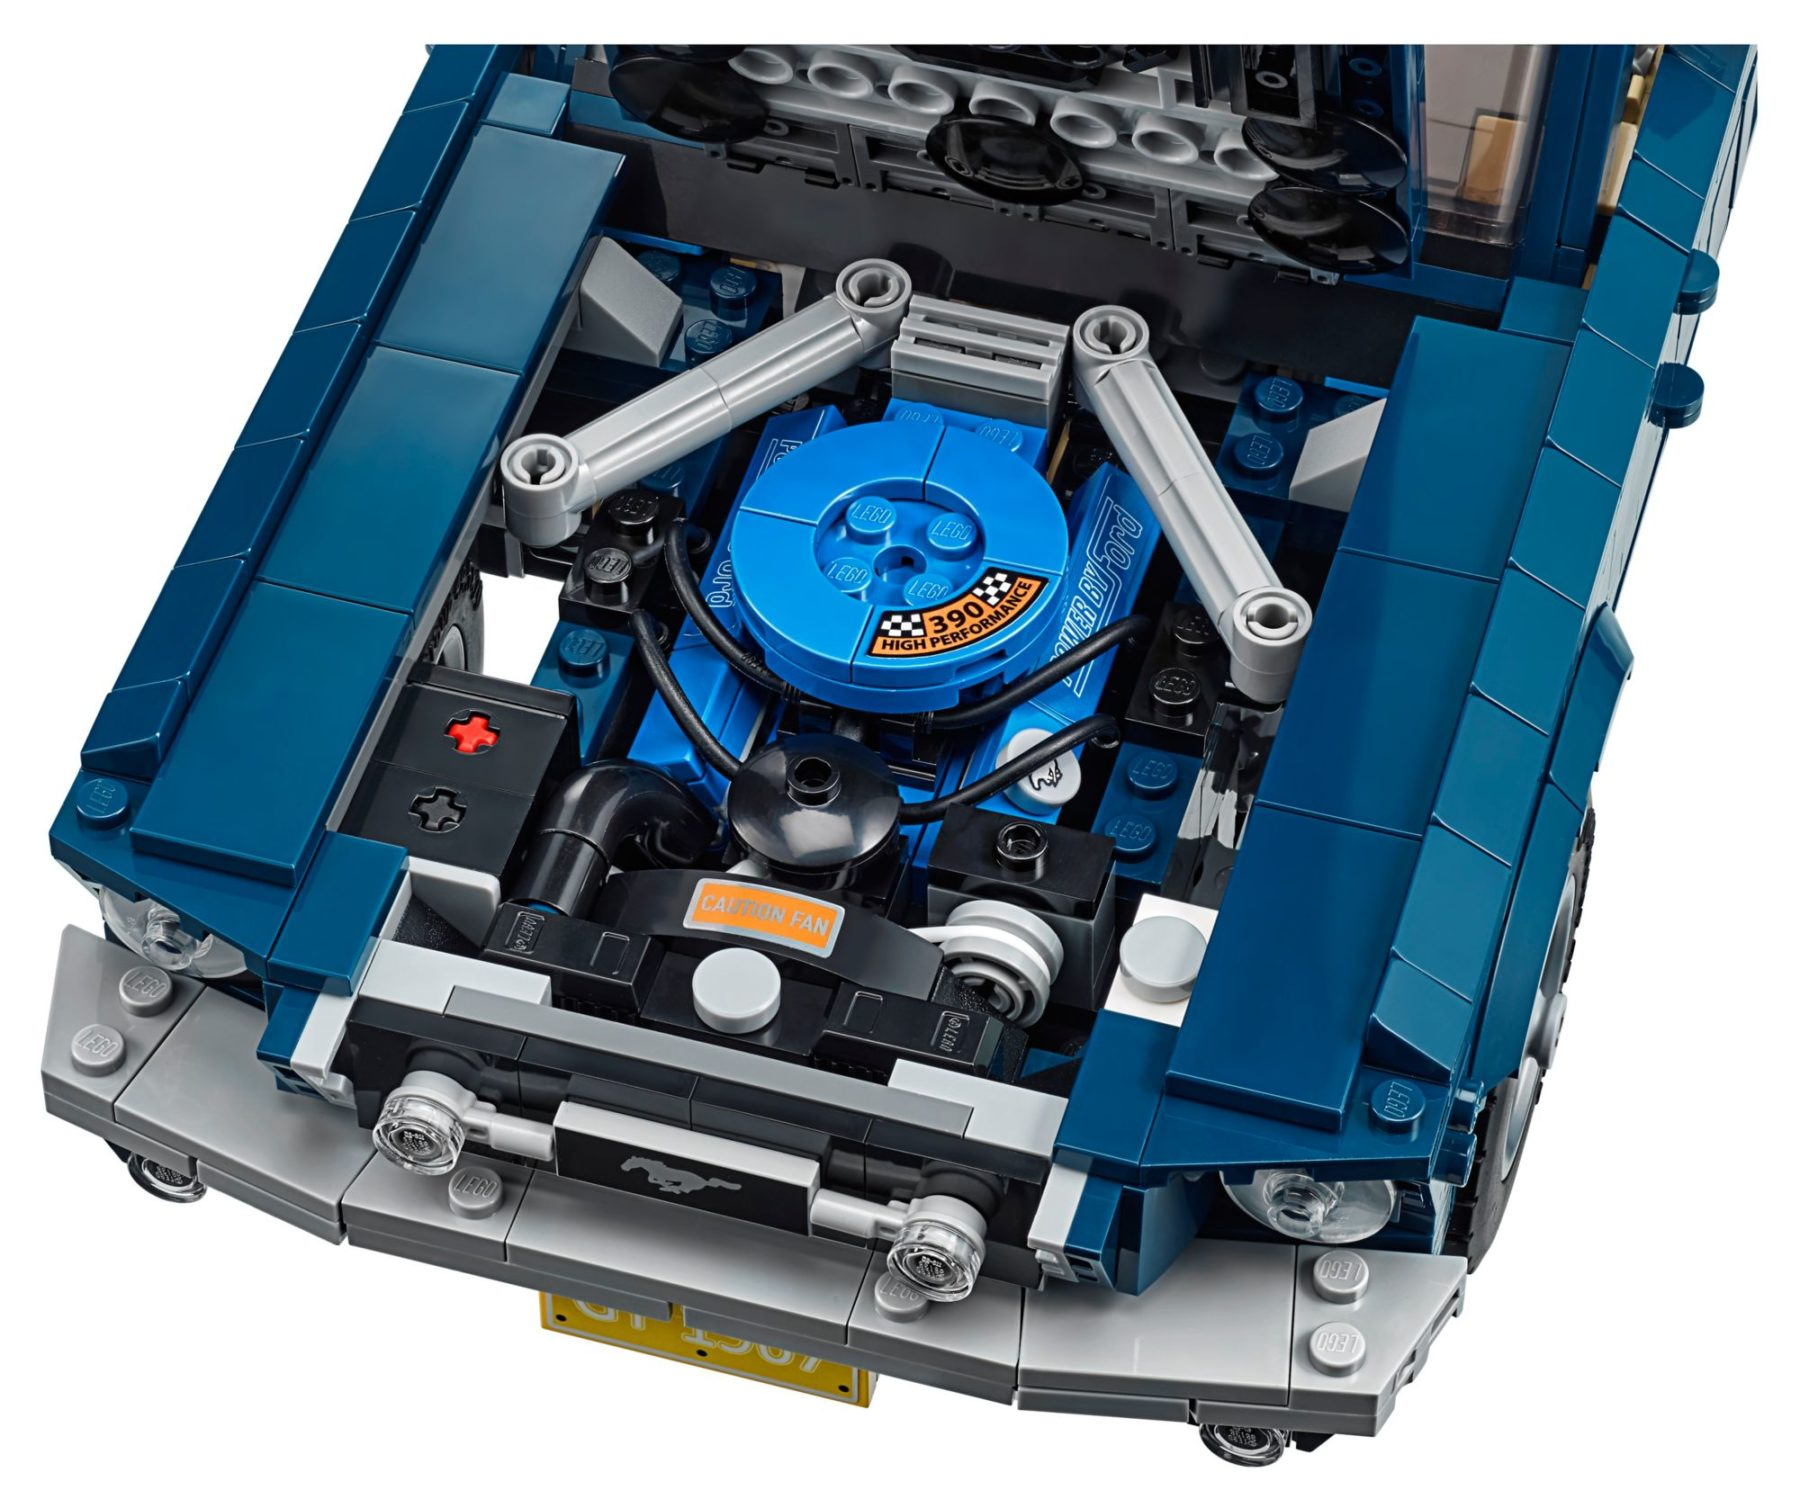 LEGO 10265 Ford Mustang GT Motor